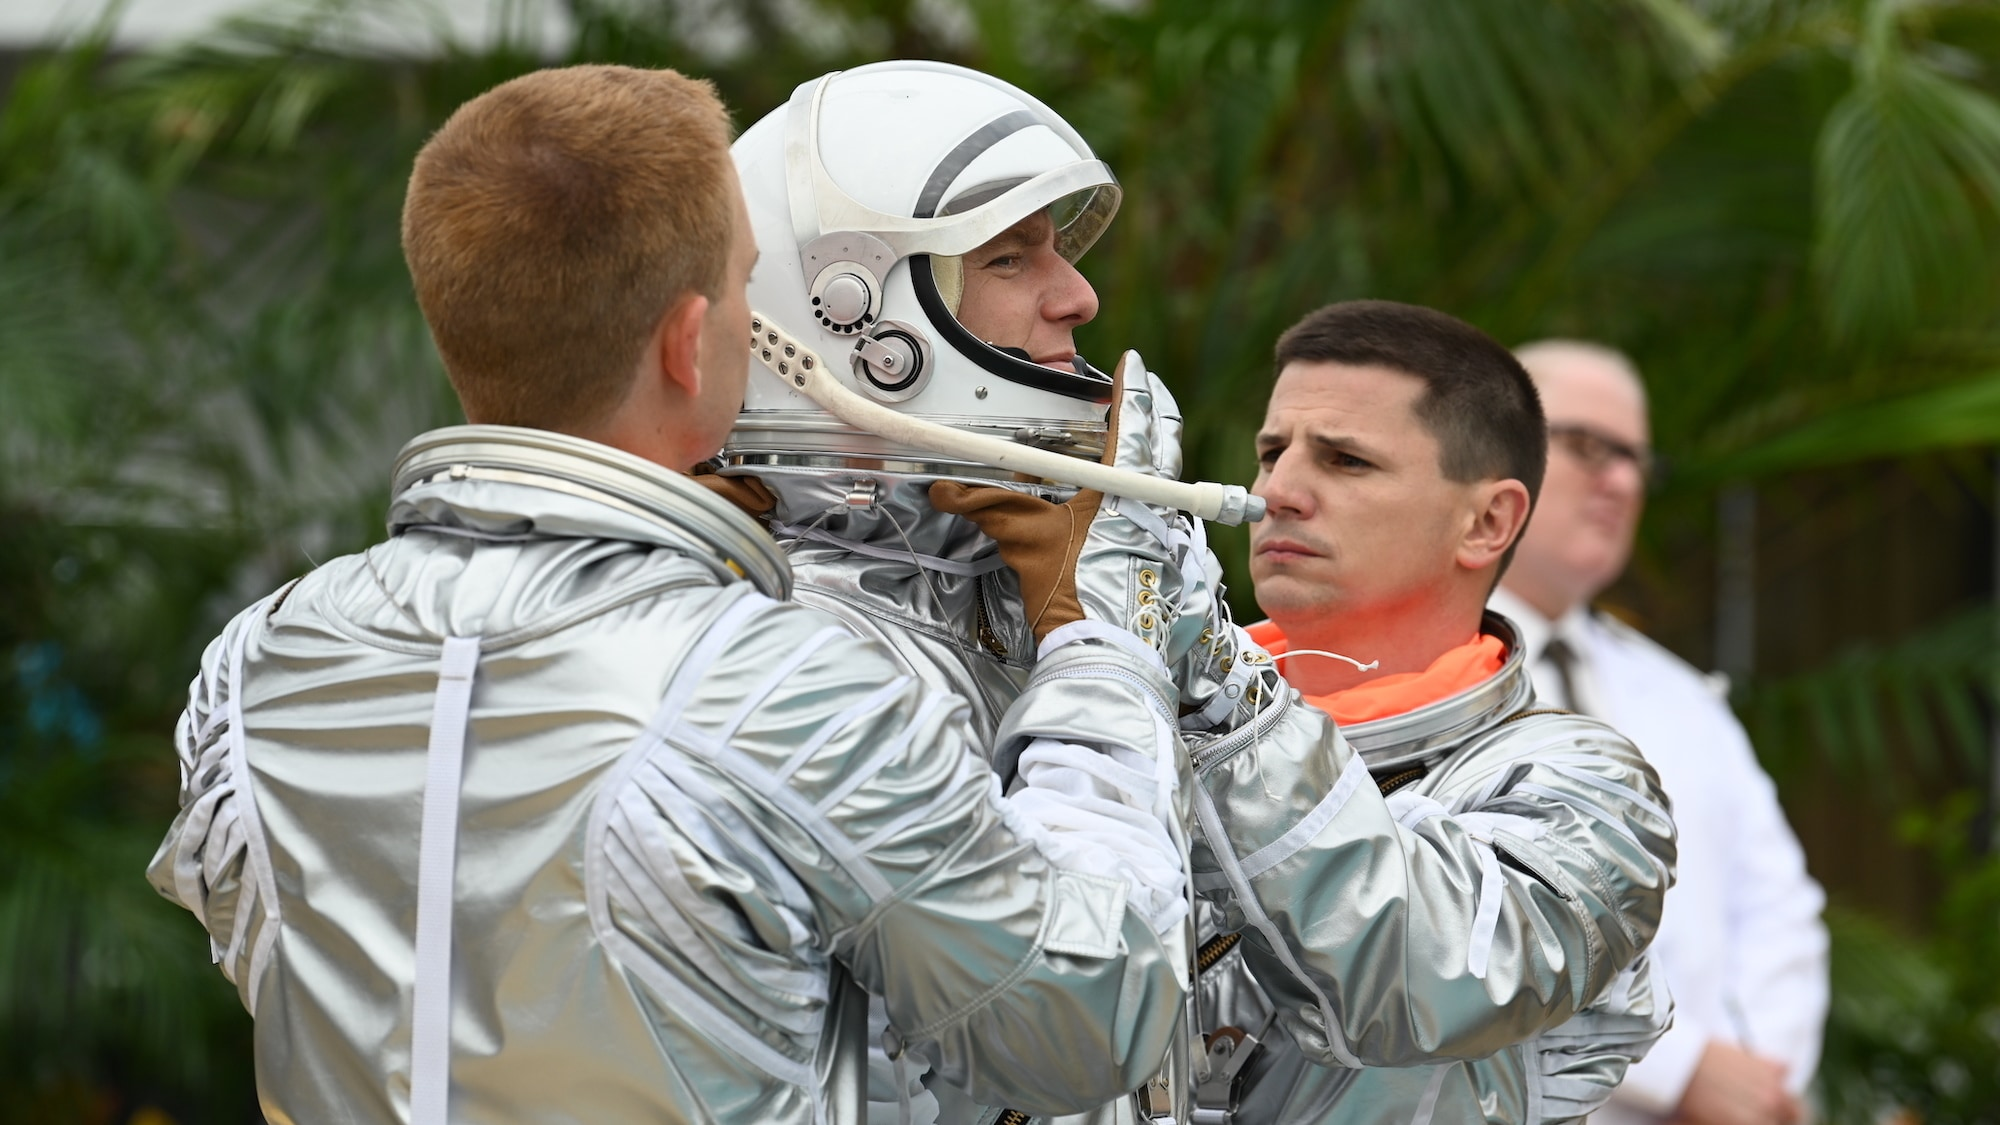 L to R: Patrick J. Adams as John Glenn, Jake McDorman as Alan Shepard and Michael Trotter as Gus Grissom during an emergency procedure demonstration in a swimming pool for Dr. Jerome Wiesner and other members of the President's Science Advisory Committee (not pictured) in National Geographic's THE RIGHT STUFF streaming on Disney+. (Credit: National Geographic/Gene Page)